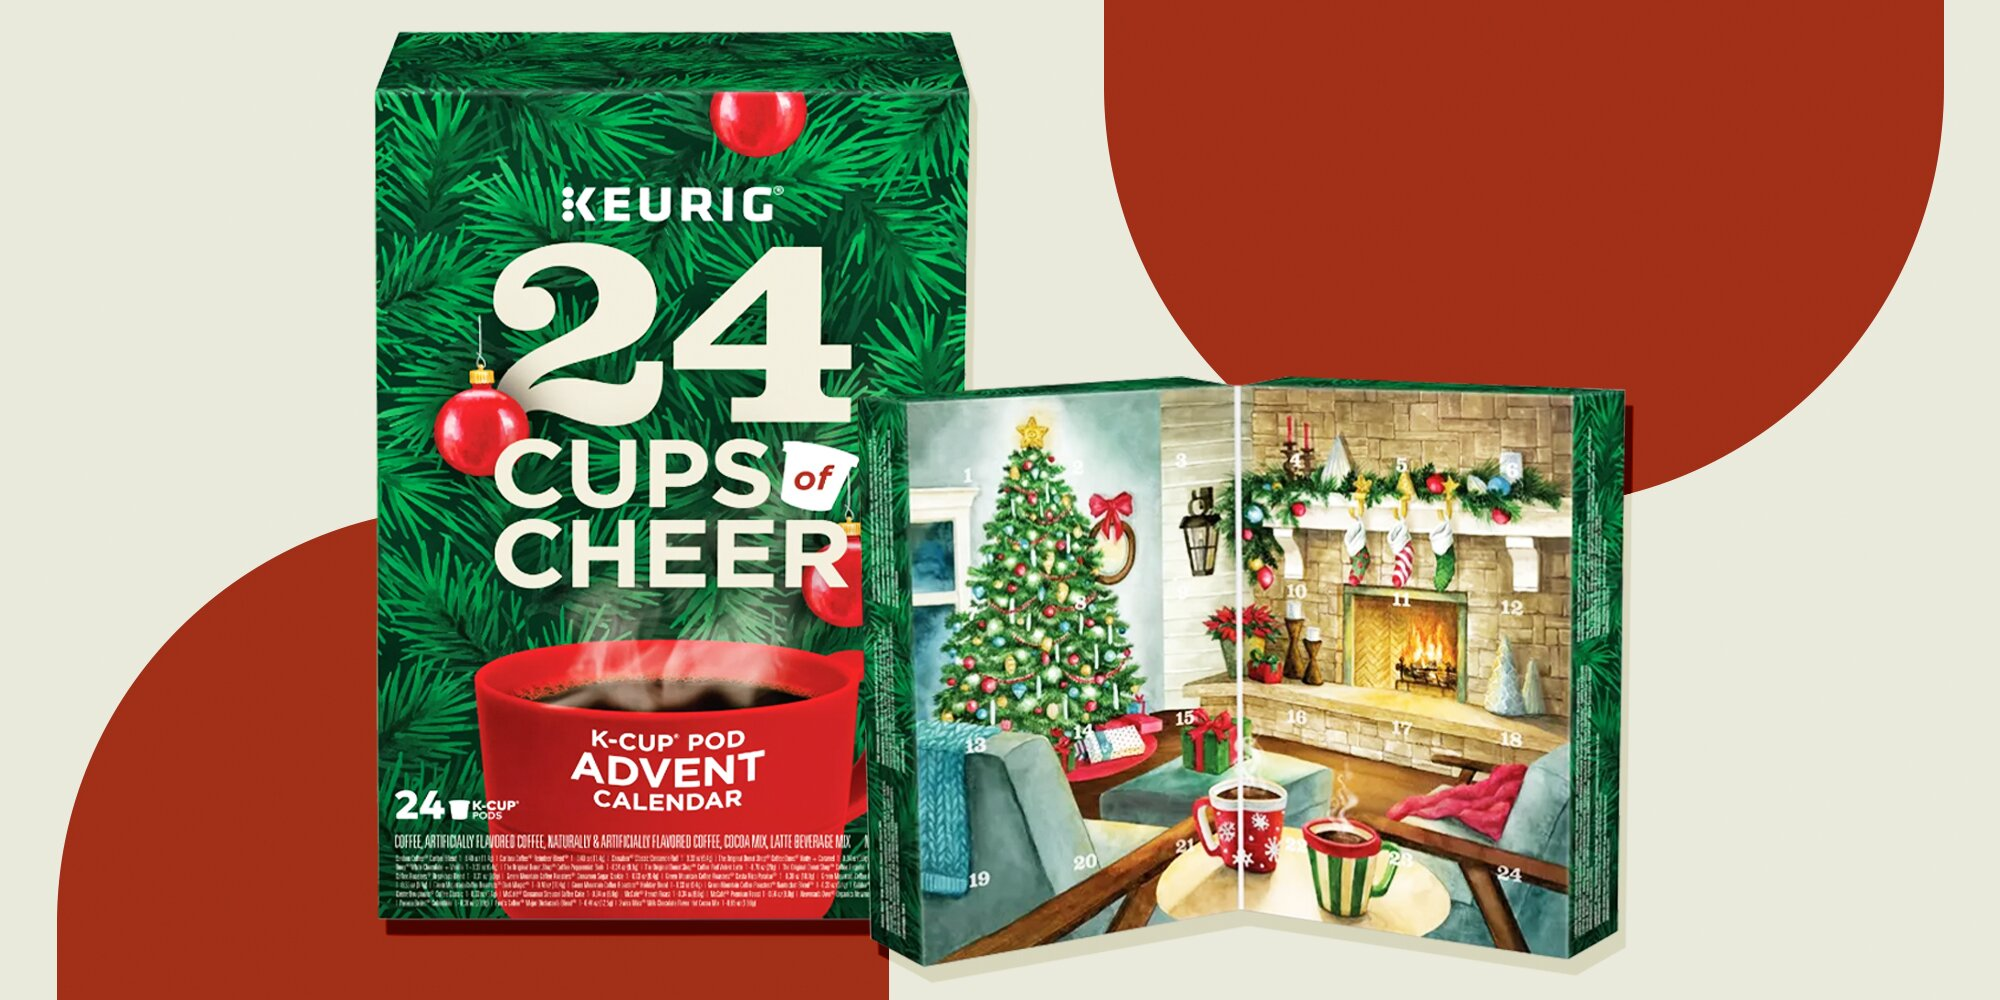 The Keurig Advent Calendar Is Already Selling Out, So Coffee Lovers Need to Buy It ASAP